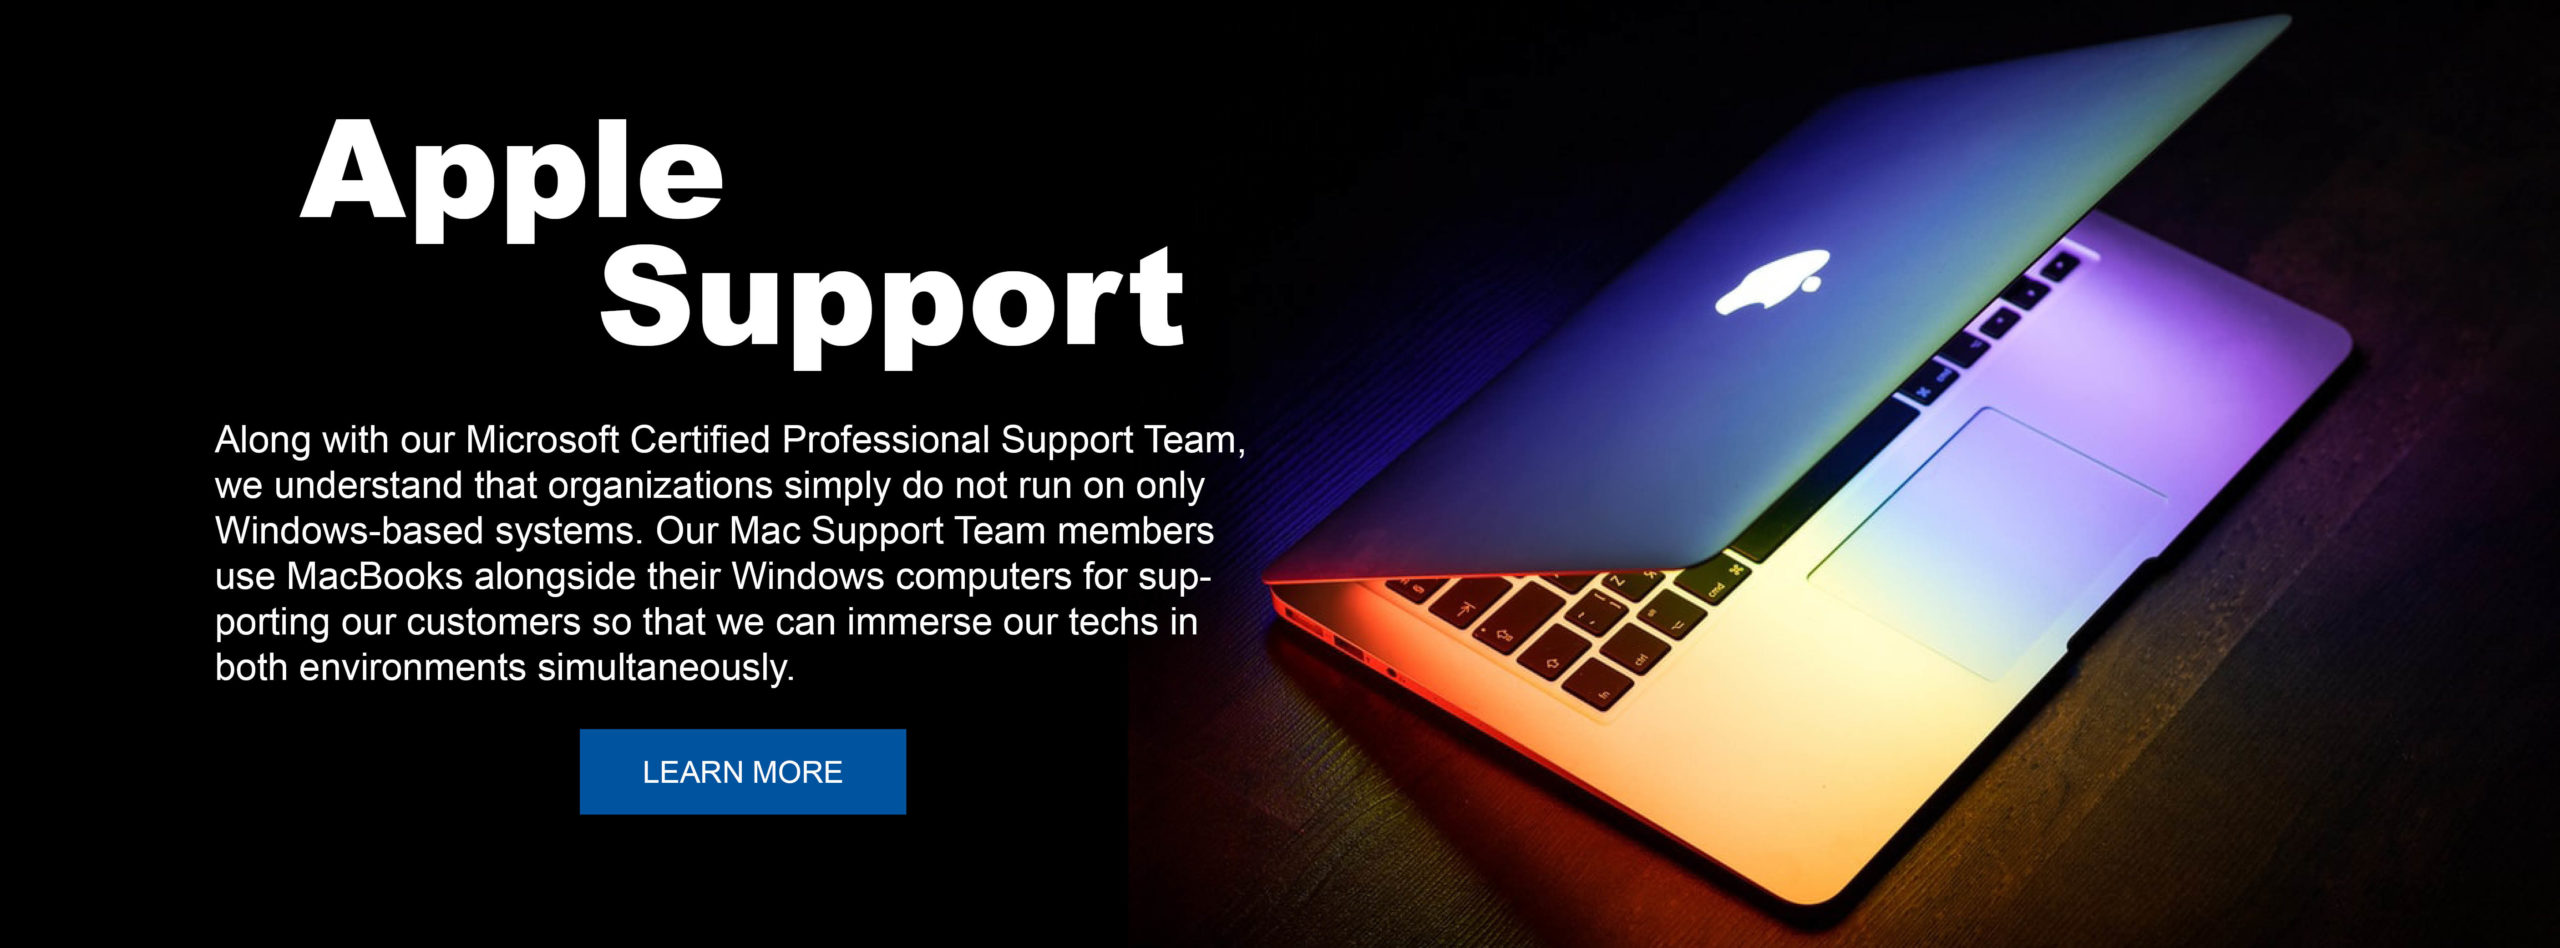 managed services apple support banner #5